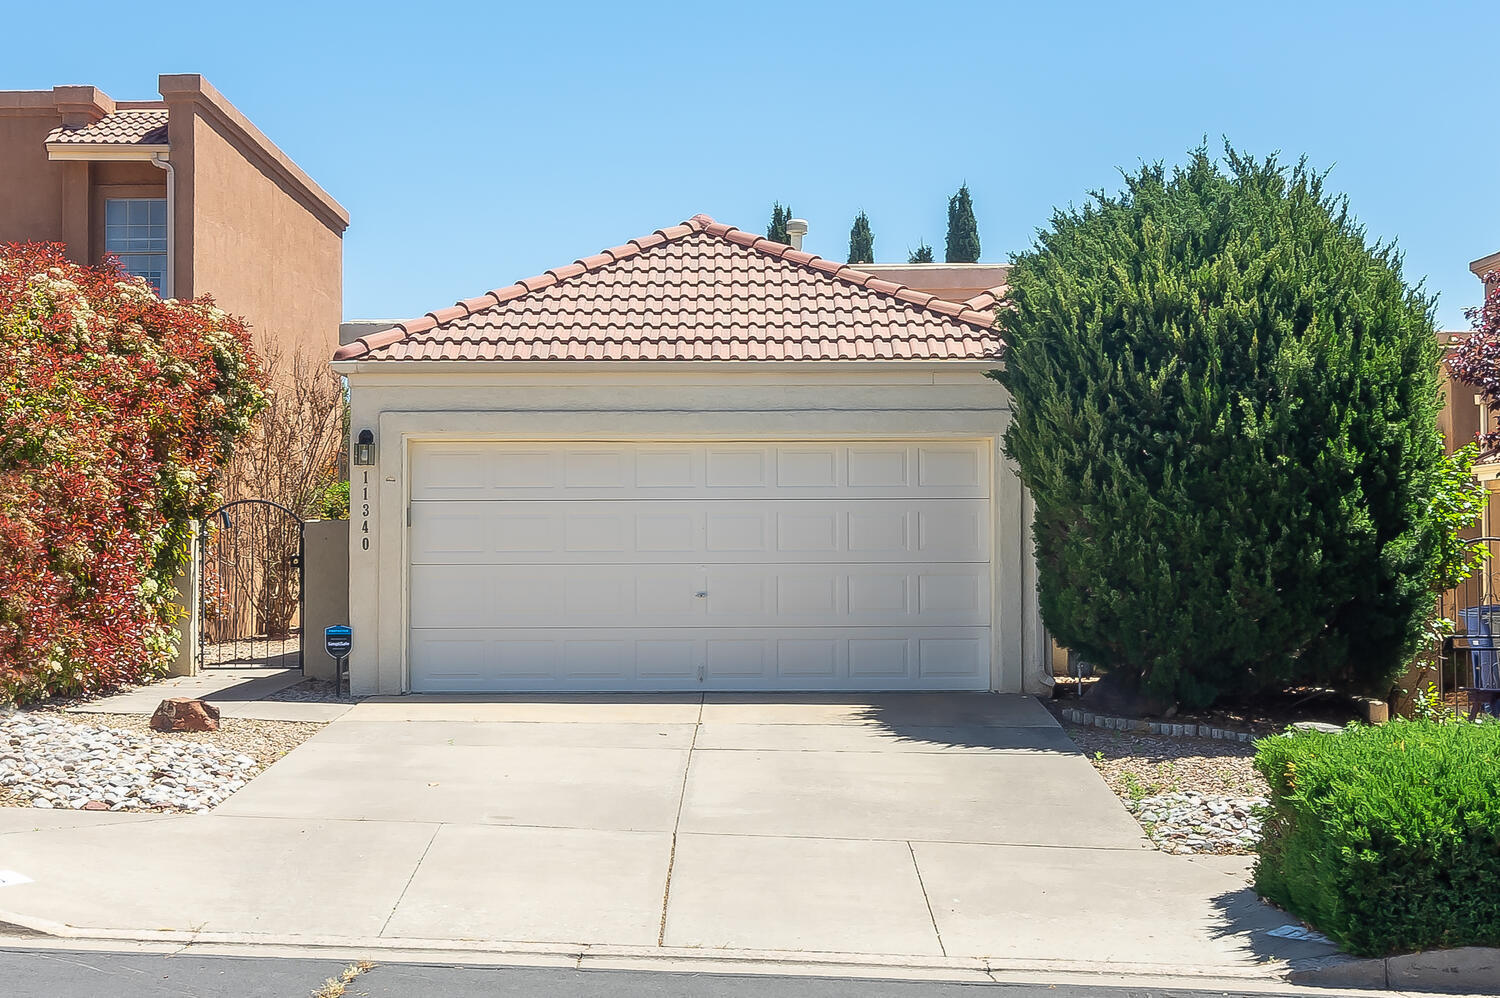 Lovely home, impeccably maintained with pride of ownership!!! Private courtyard with security gate leads to the front door! Step inside and experience a bright and light home with raised ceilings, clerestory windows, living room & family room sharing a 2-way gas log fireplace!  A spacious kitchen offers abundance of cabinetry, microwave, dishwasher, electric oven, roomy breakfast area & opens to the family room with an atrium door to the private backyard & large covered patio to enjoy the summertime bar-be-ques! Escape to the generous size master bedroom through double doors, with  a private patio! Master bathroom offers  double sinks, separate shower, garden tub and walk-in closet! Refrigerated air conditioning! Recent water heater!  NICE!